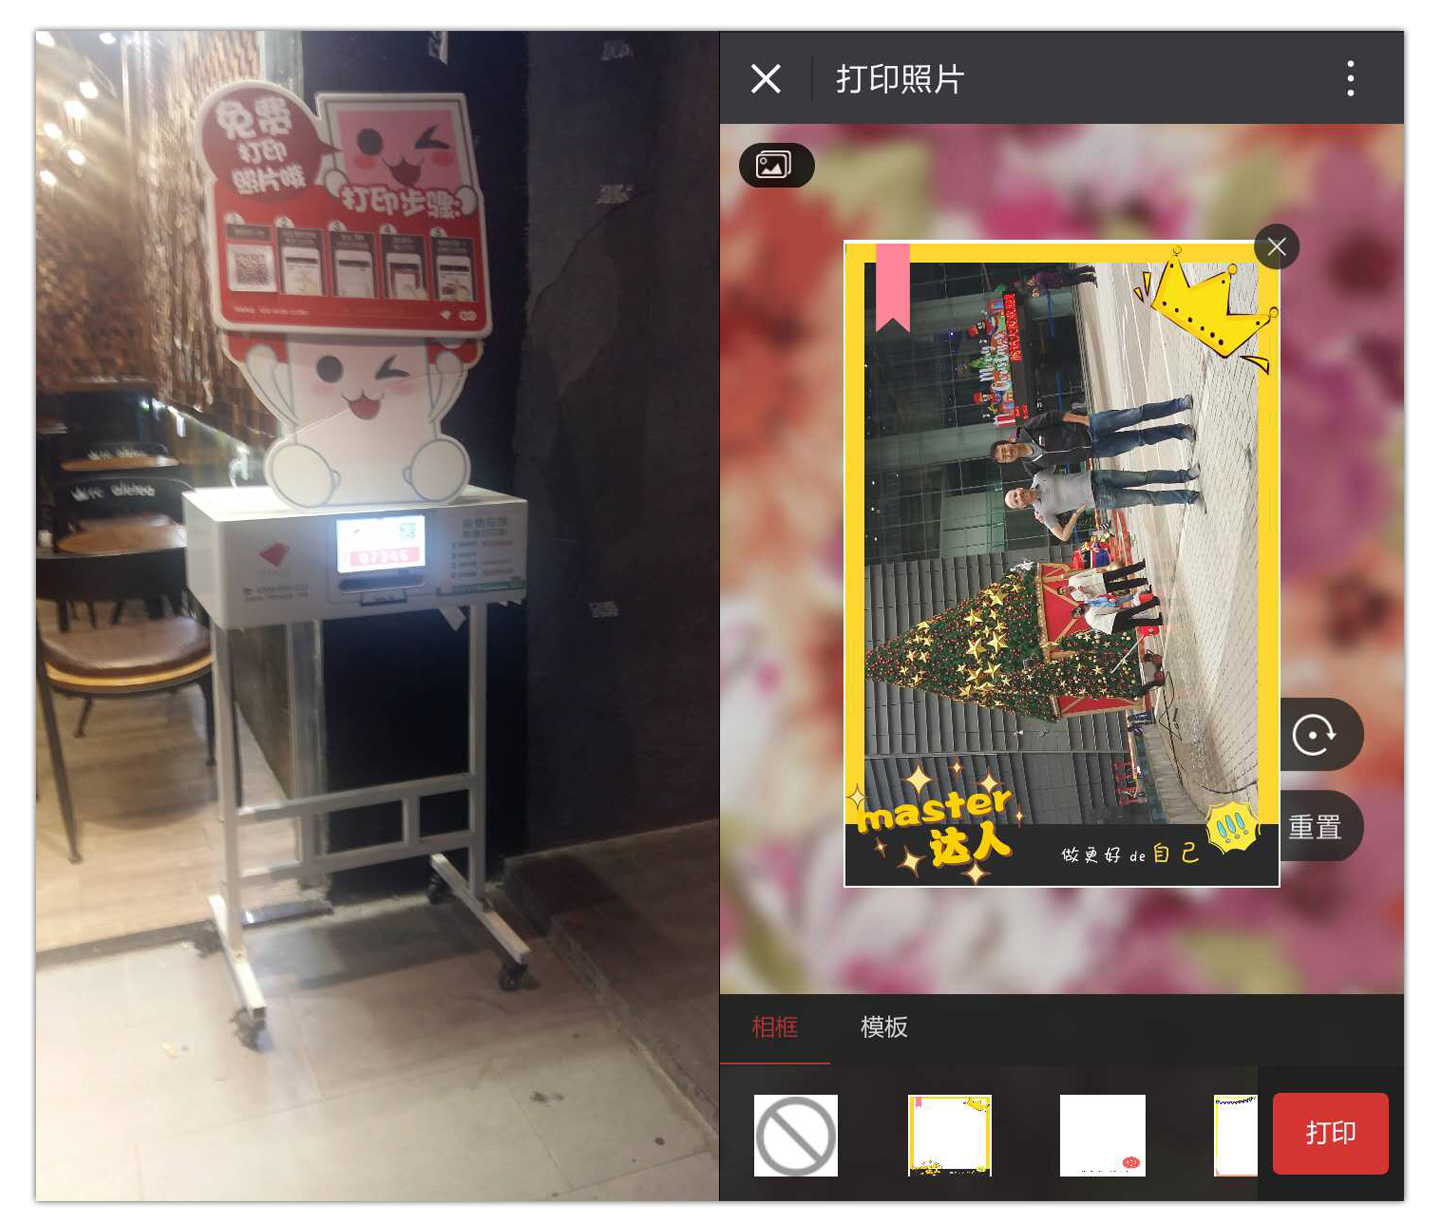 WeChat Photo Printing